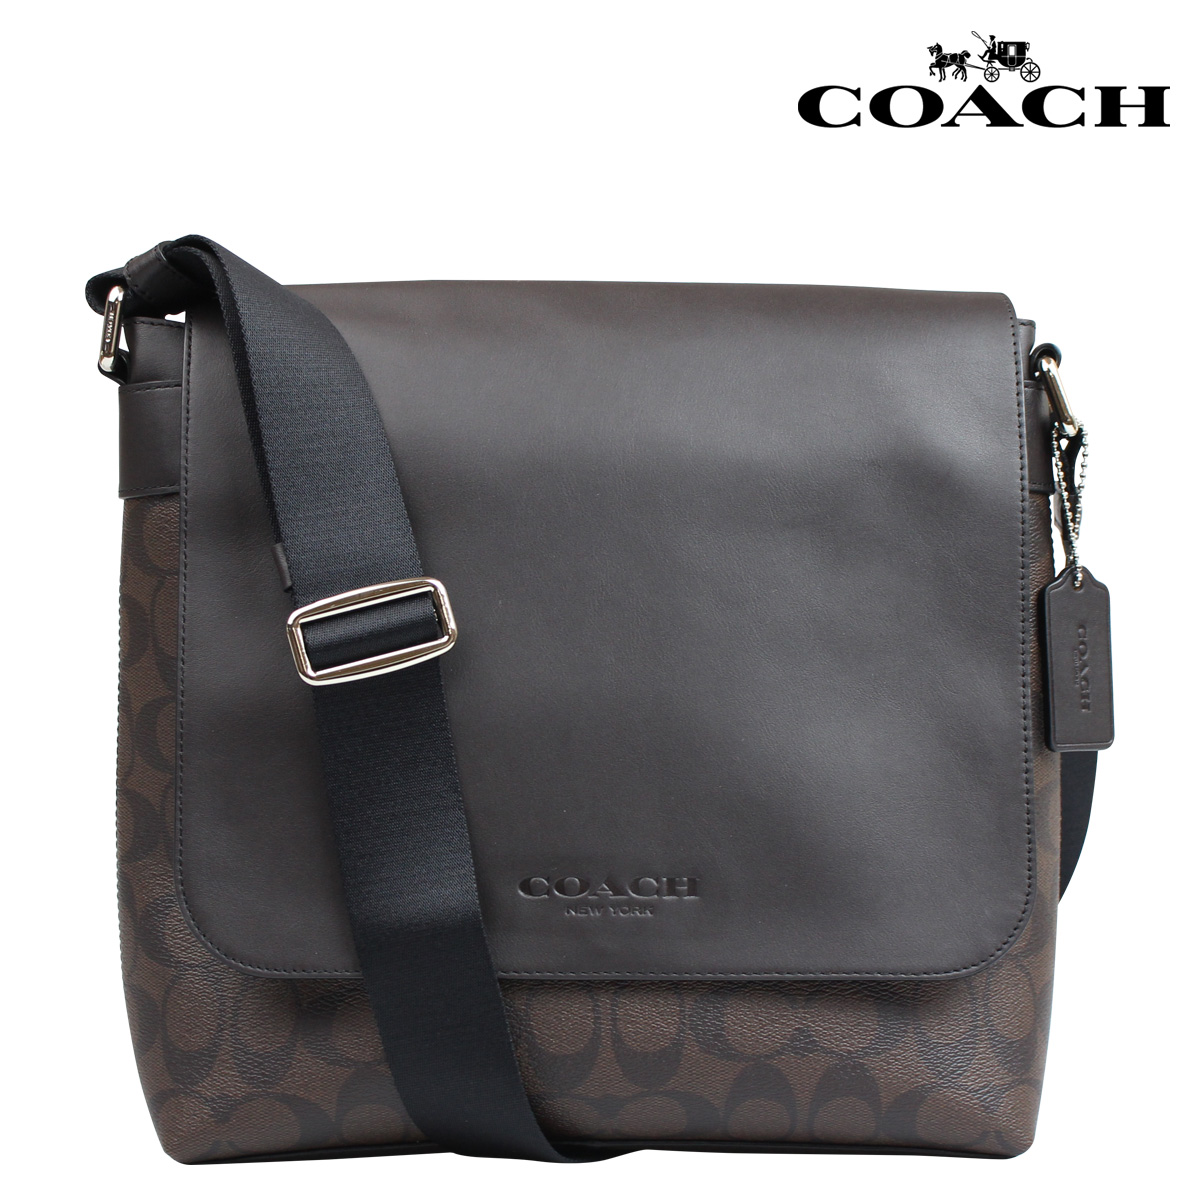 Sugar Online Shop | Rakuten Global Market: Coach COACH bag ...